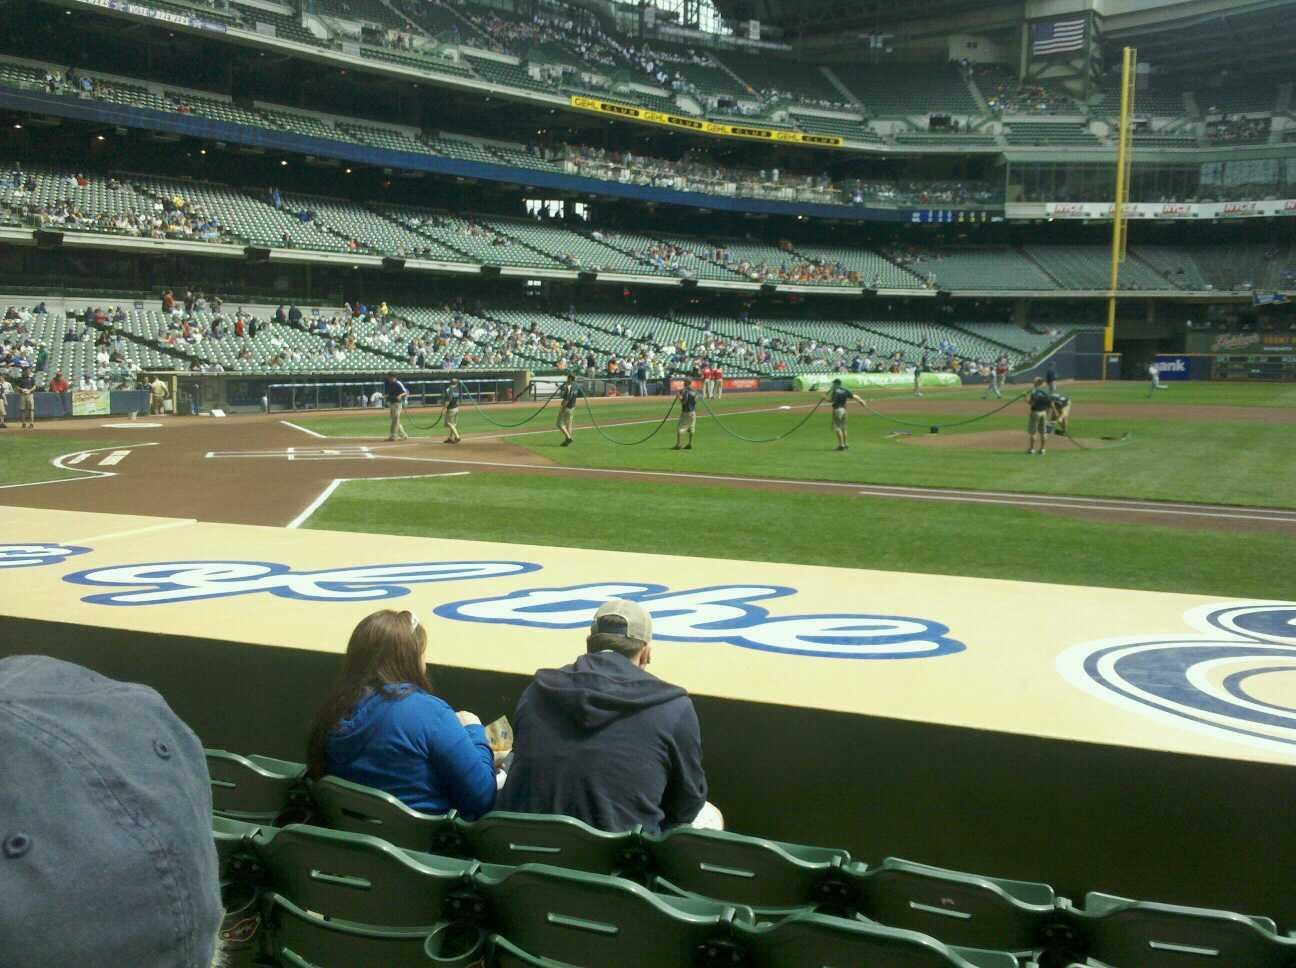 Miller Park Section 113 Row 8 Seat 10